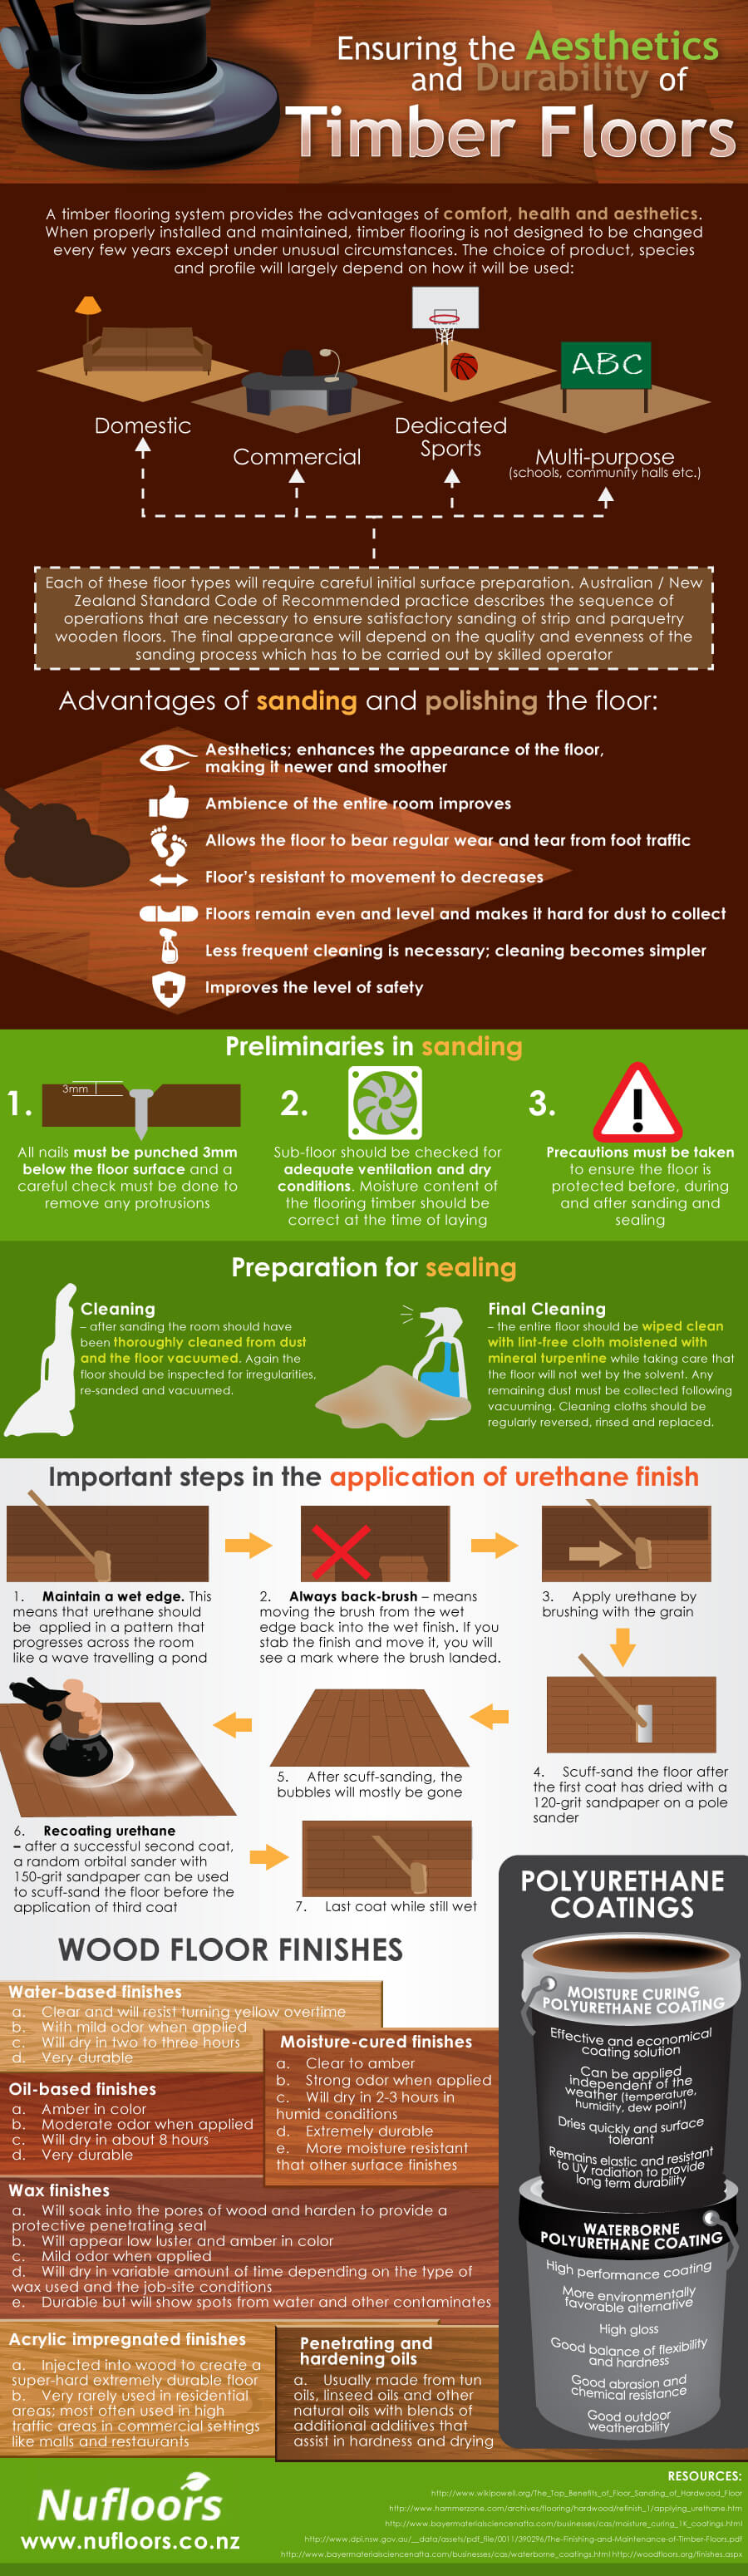 Timber-Floors-infographic